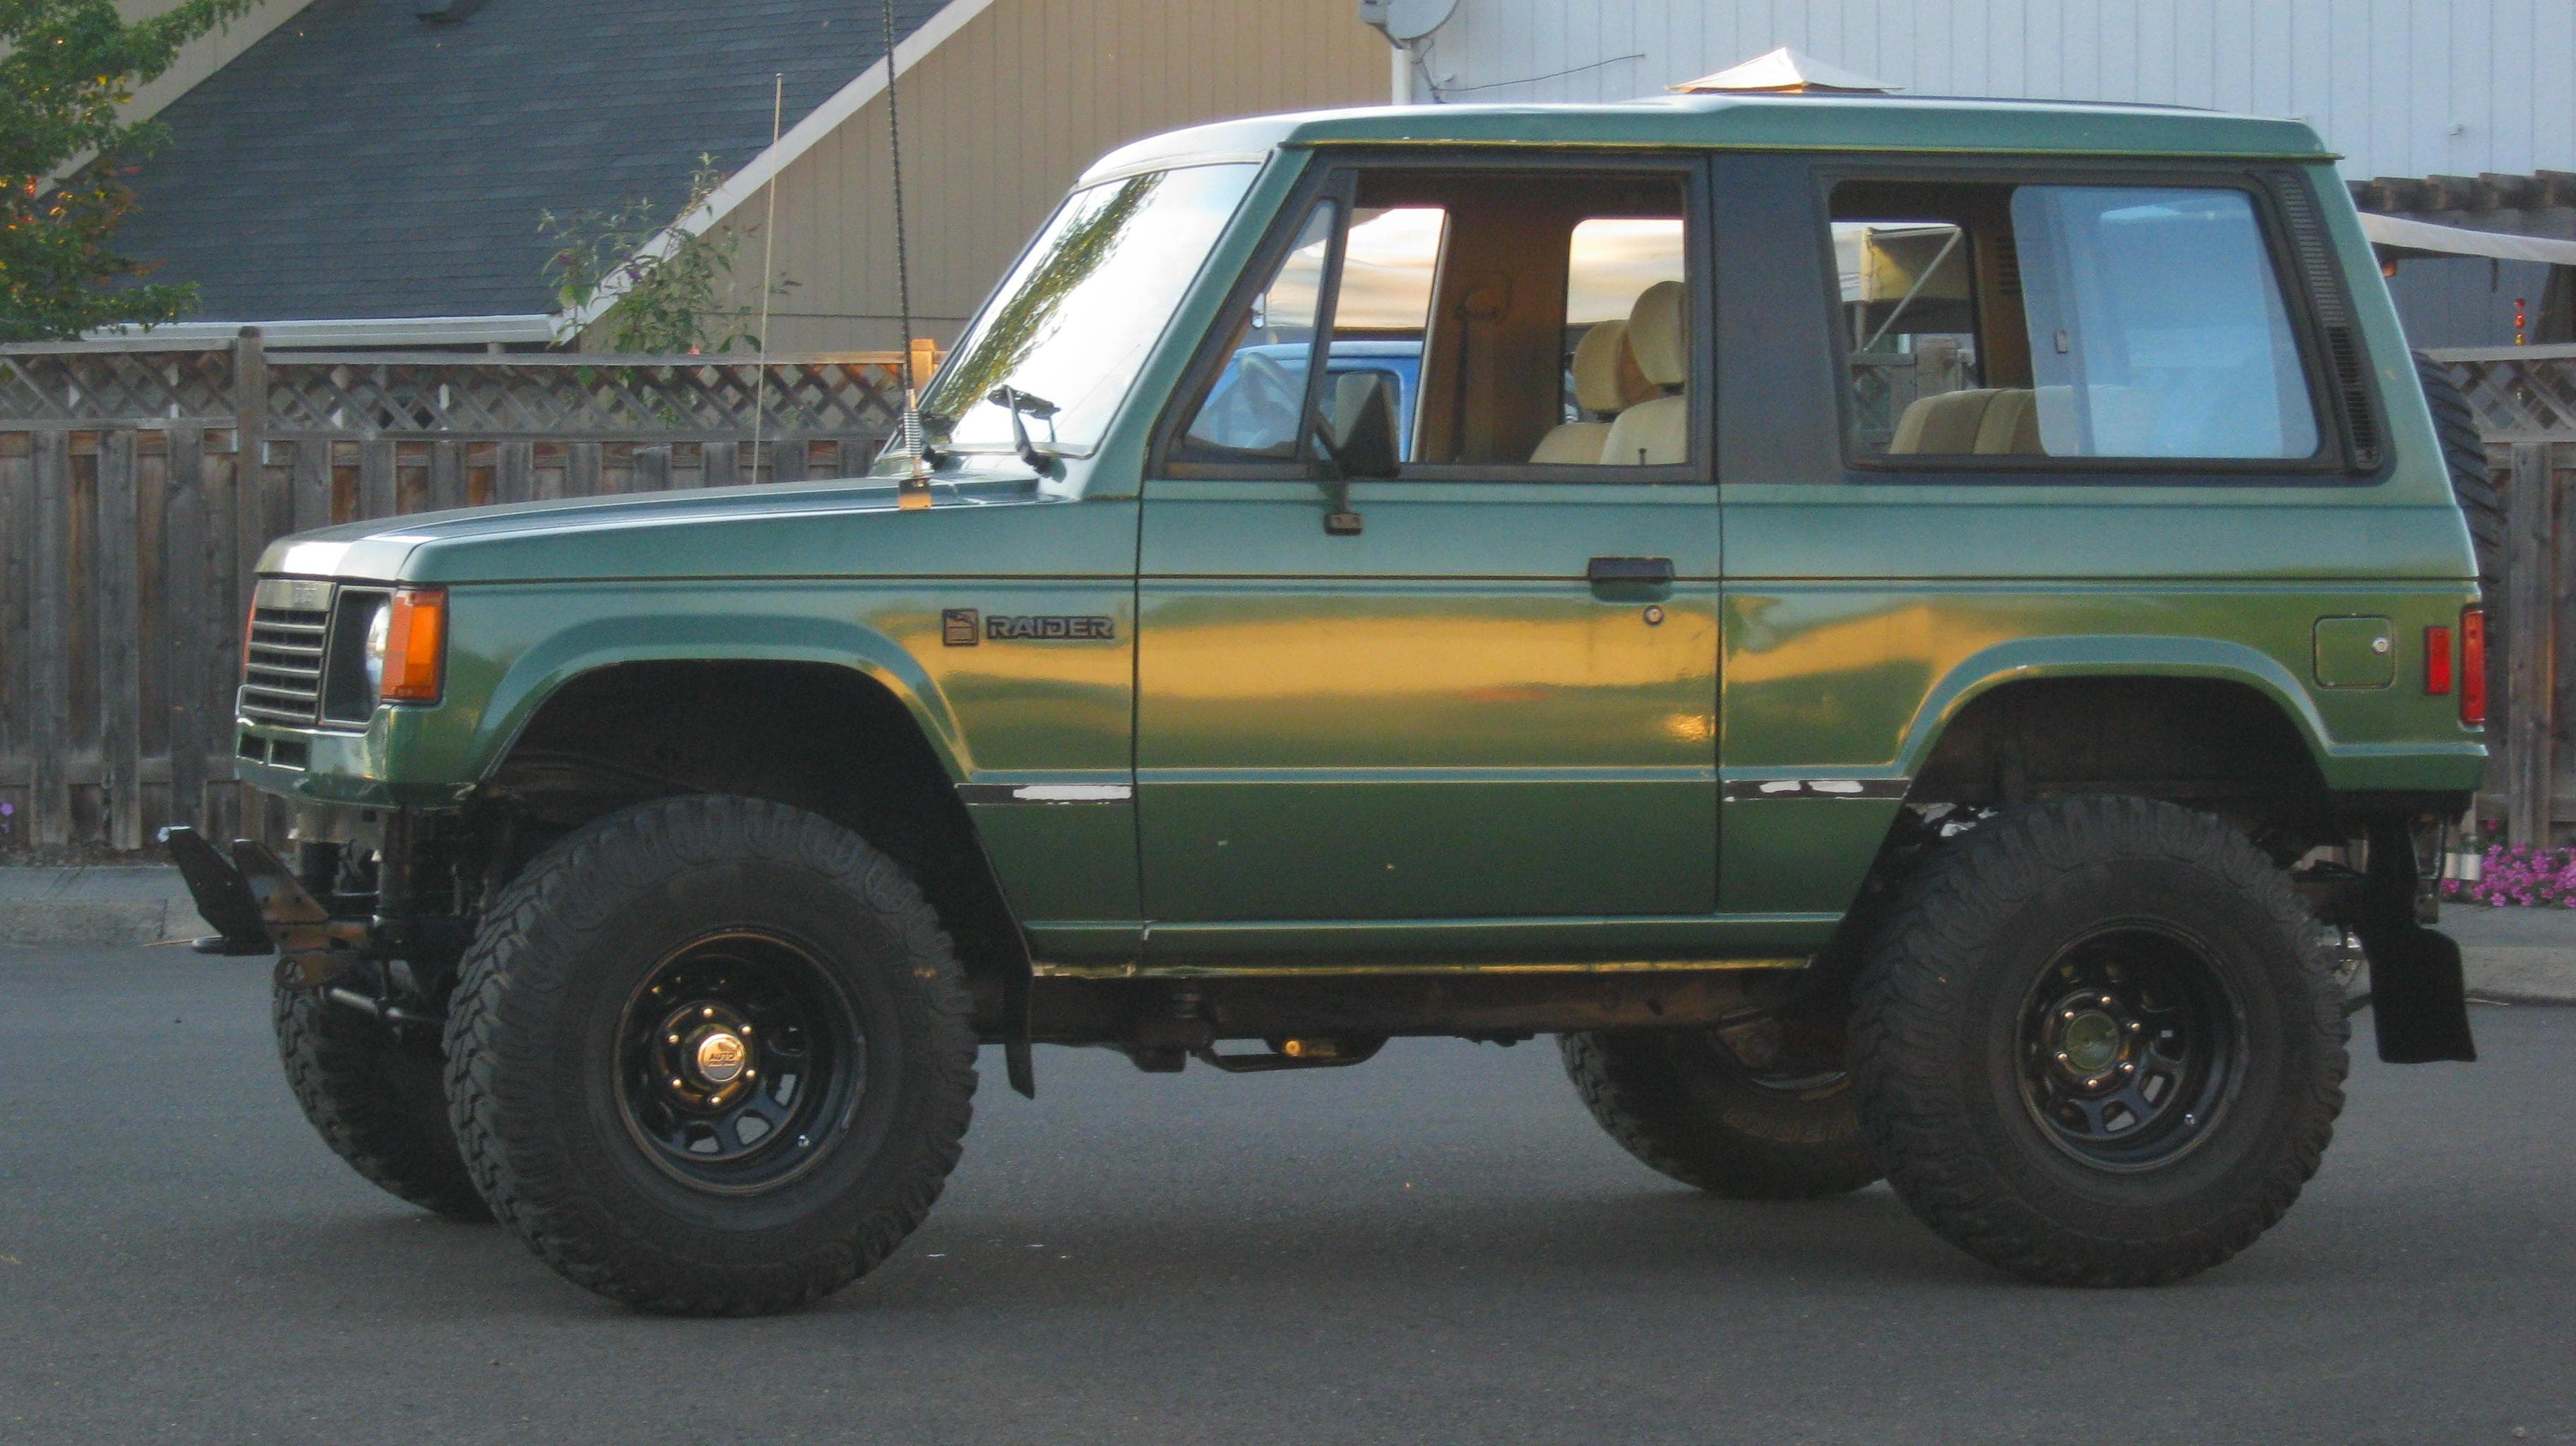 What small 4x4 for under $3k| Grassroots Motorsports | forum